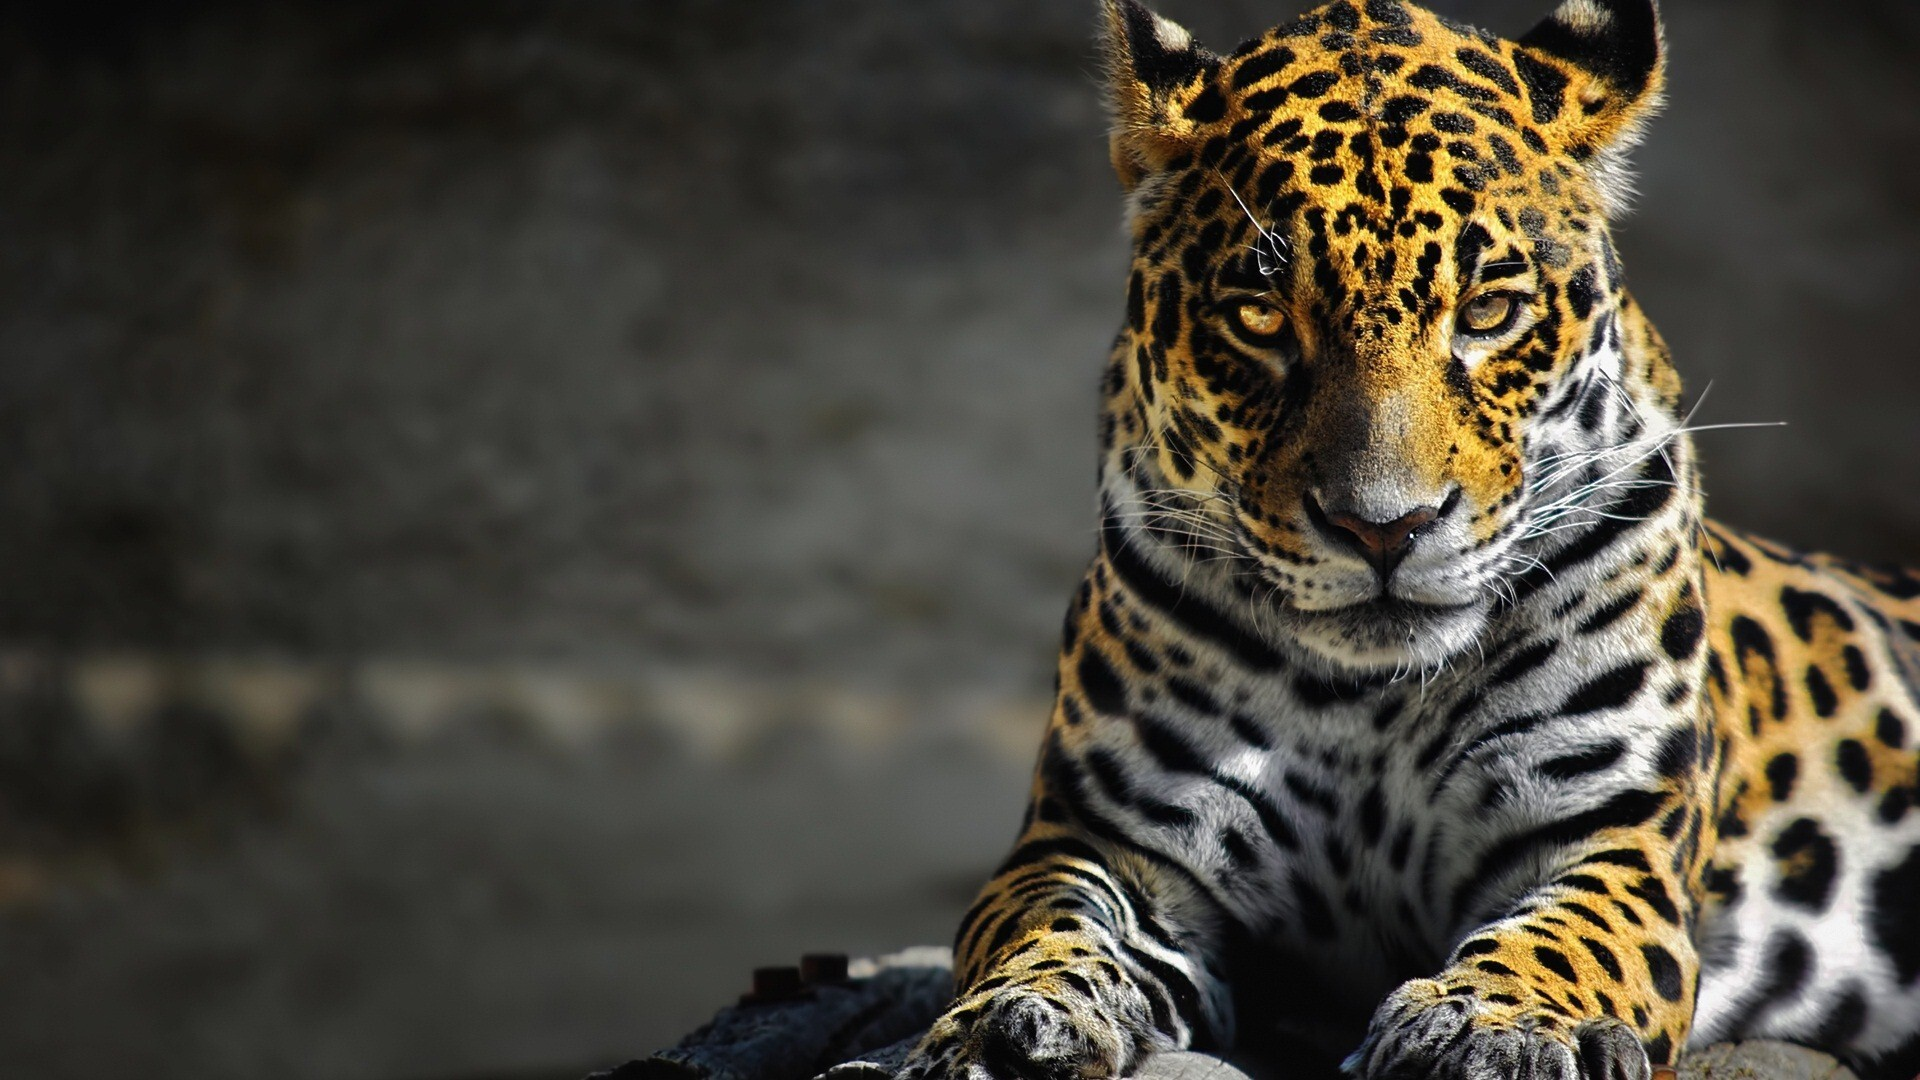 leopard wallpaper hd images pictures becuo